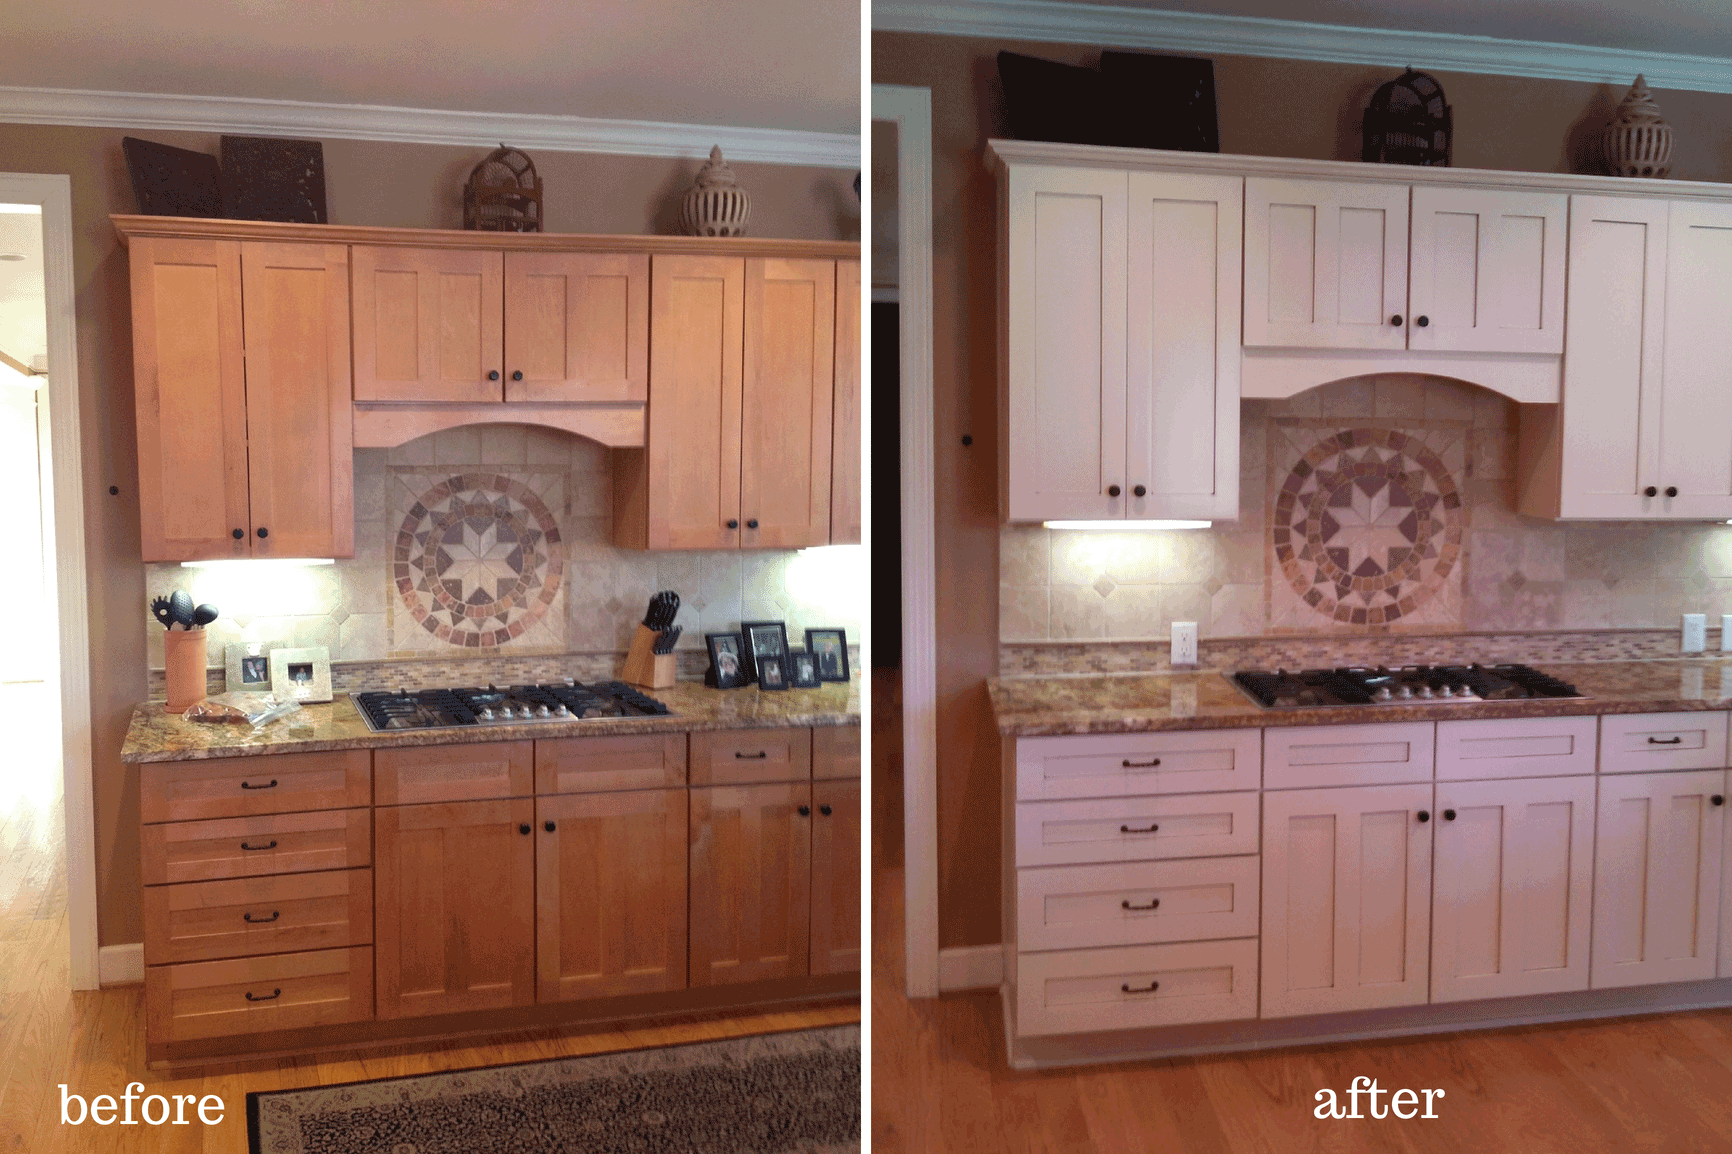 Interior Painting Stained Kitchen Cabinets painted cabinets nashville tn before and after photos kitchen makeover